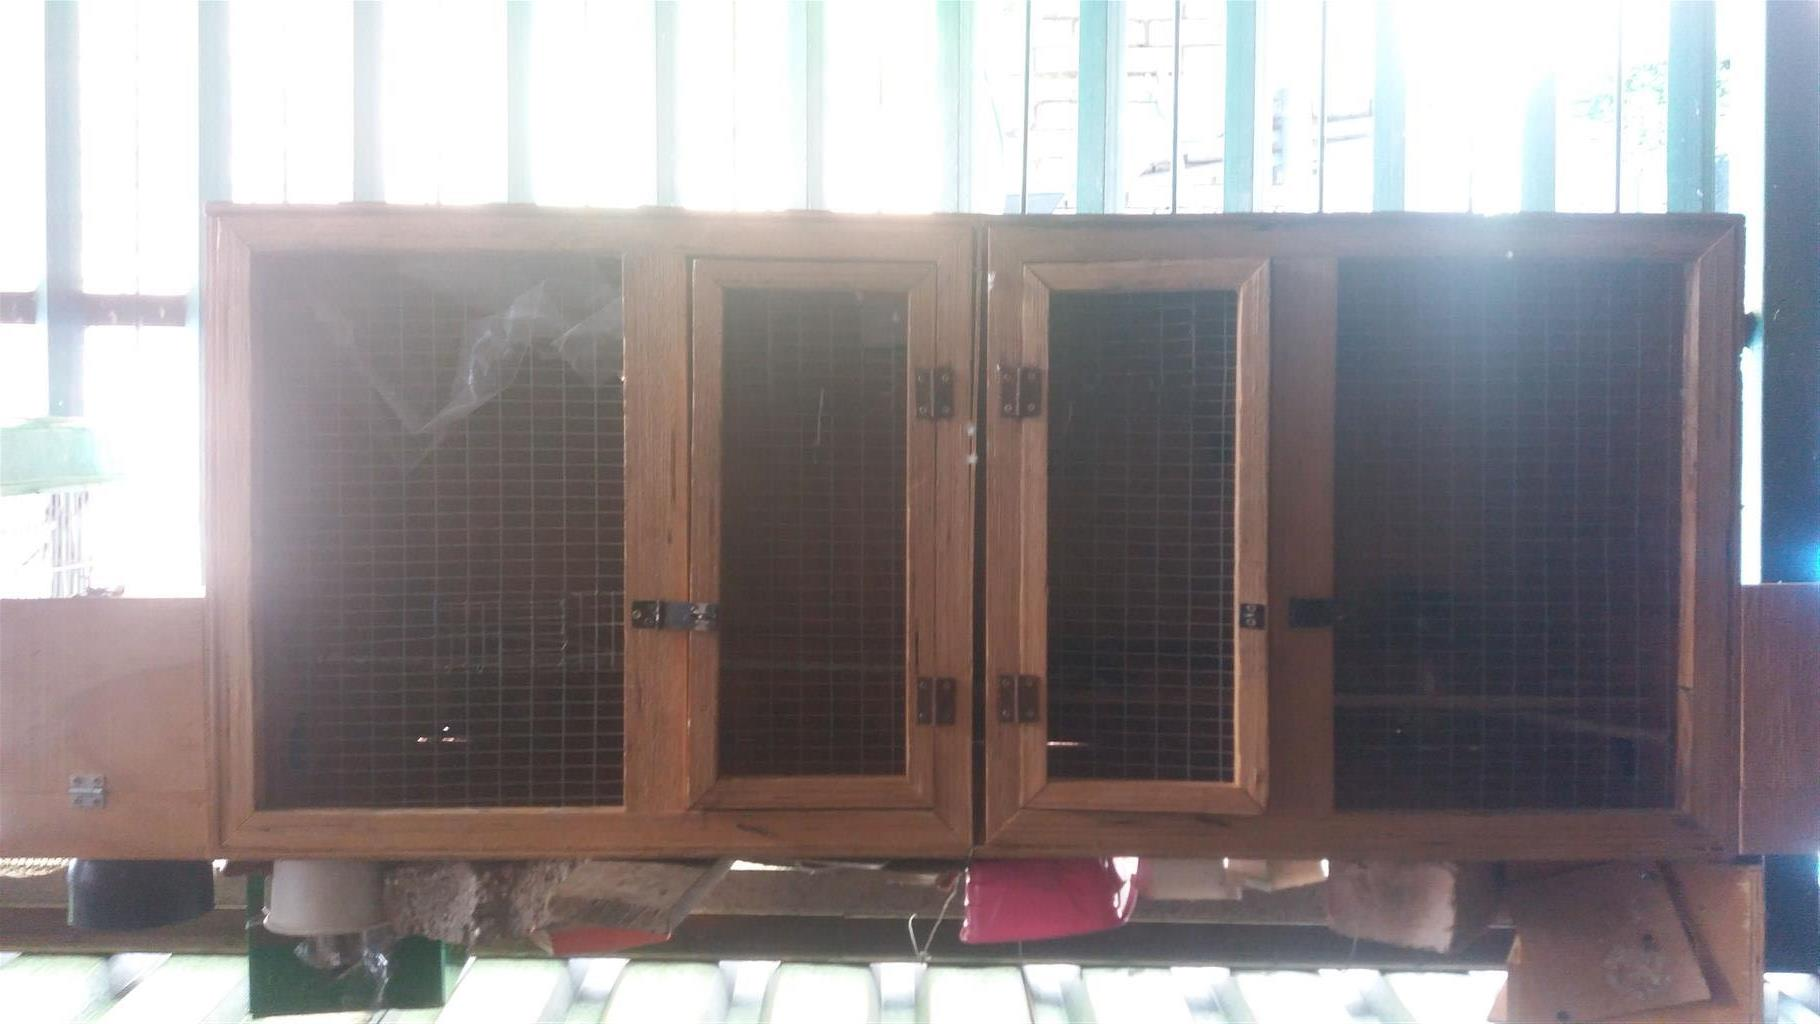 3 x wooden bird cages with nests